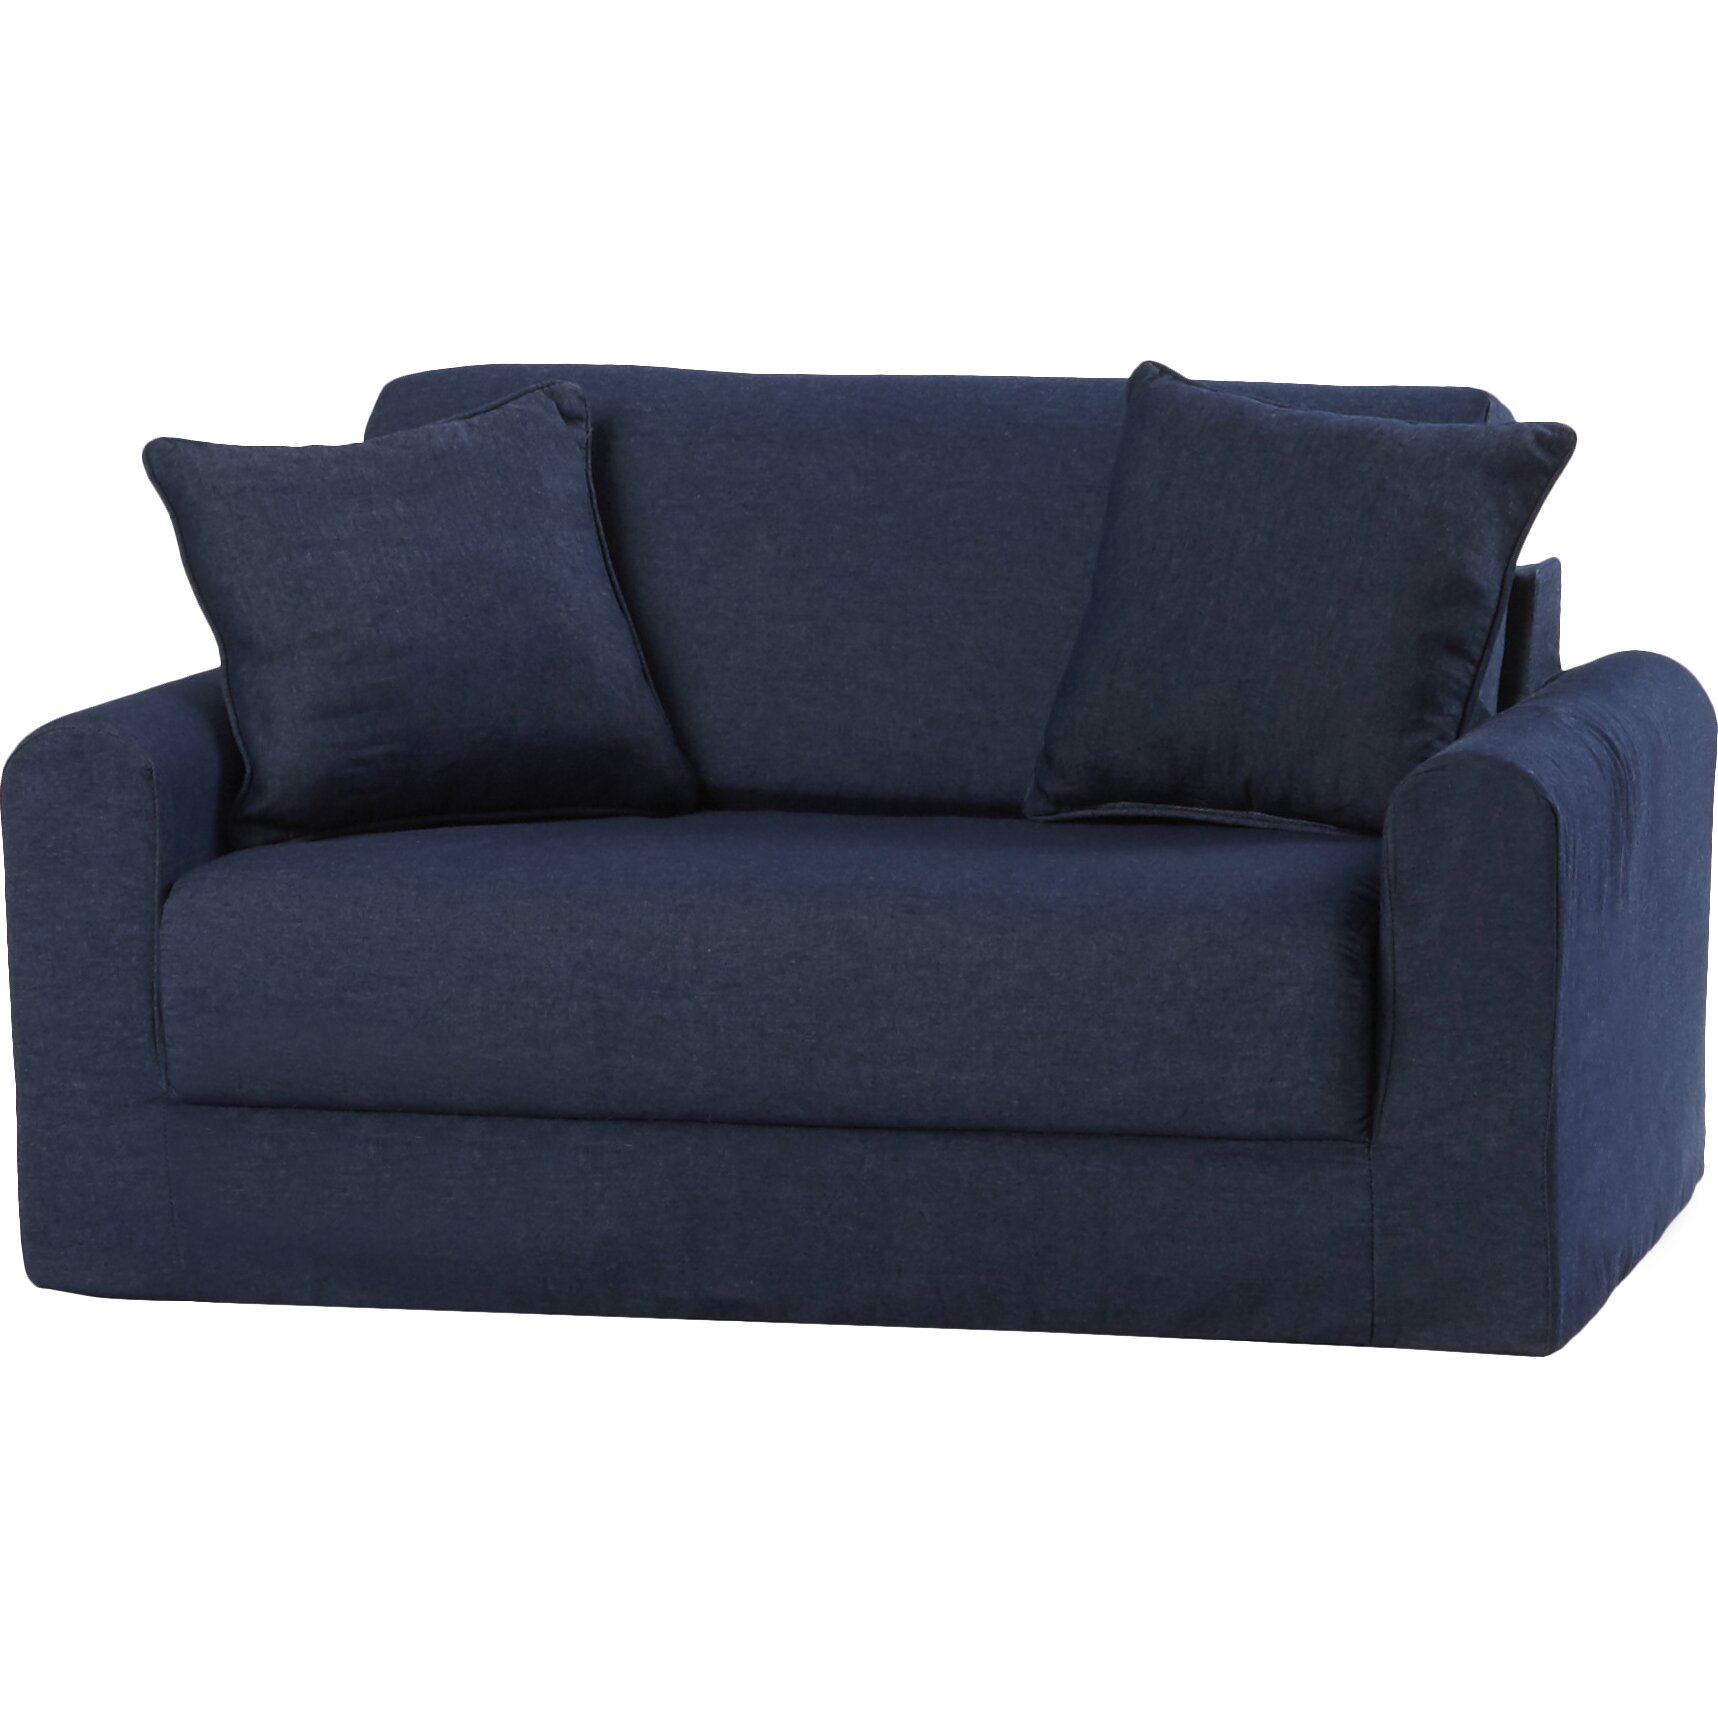 Fun furnishings children 39 s suede sofa sleeper reviews for Suede furniture